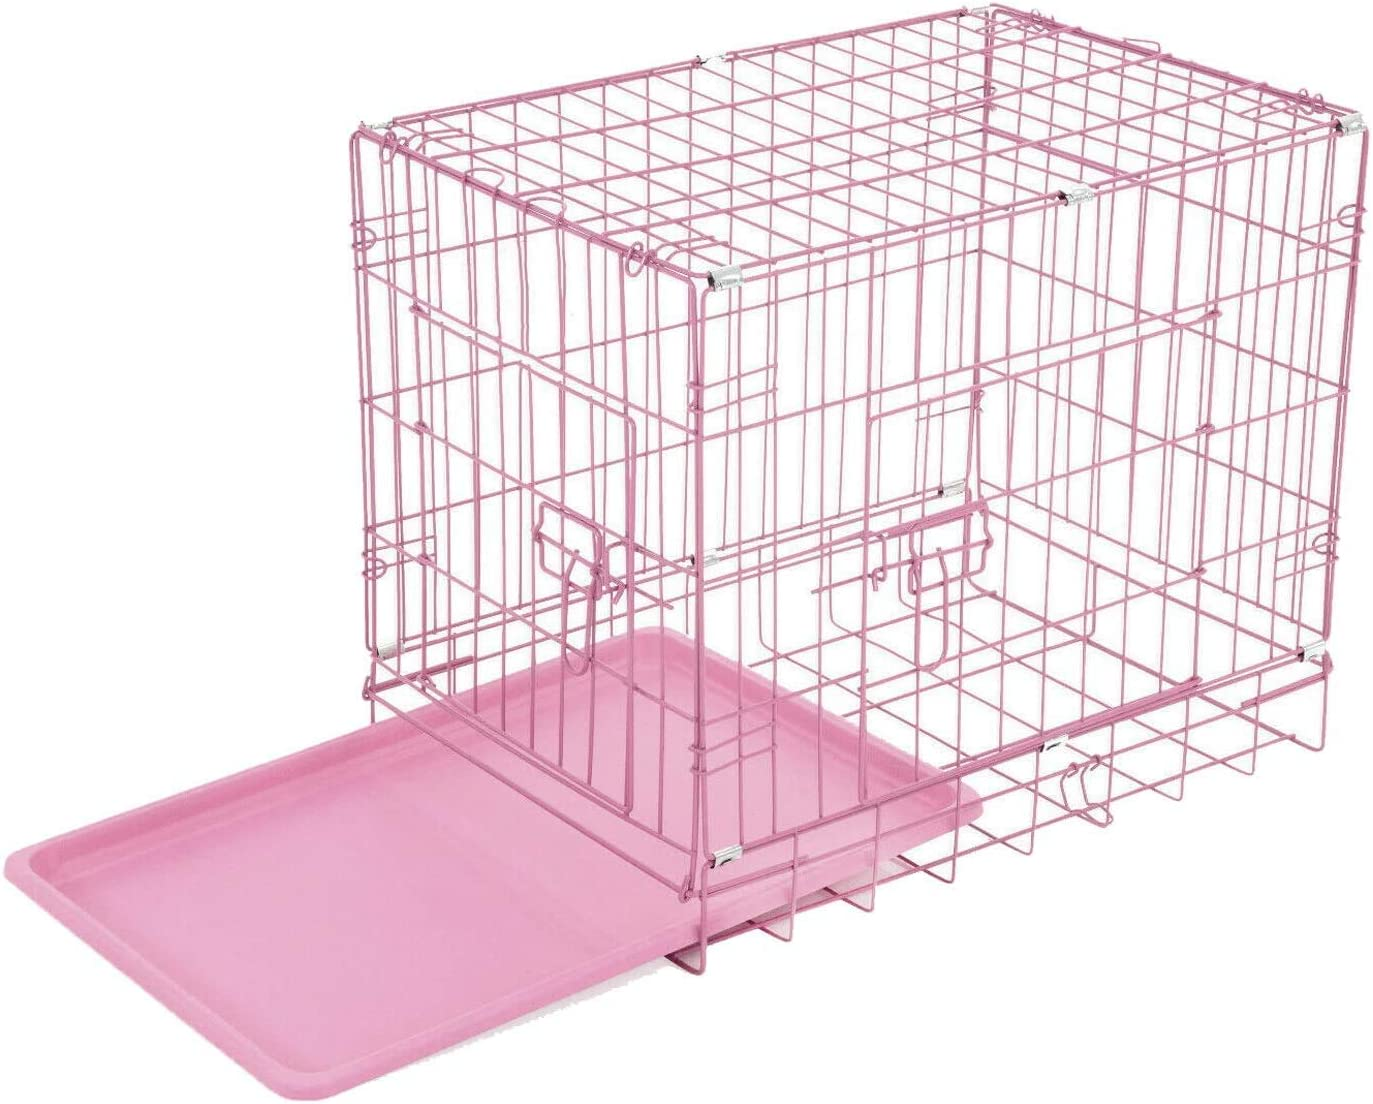 Animal Transport Pet Carrier with Double-Door Pink 24 Inch: 63x44x50.5cm Easy to Clean Dog Crate Home Pet Cage Dog Cat Puppy Training Folding Metal Crate Fence with Tray